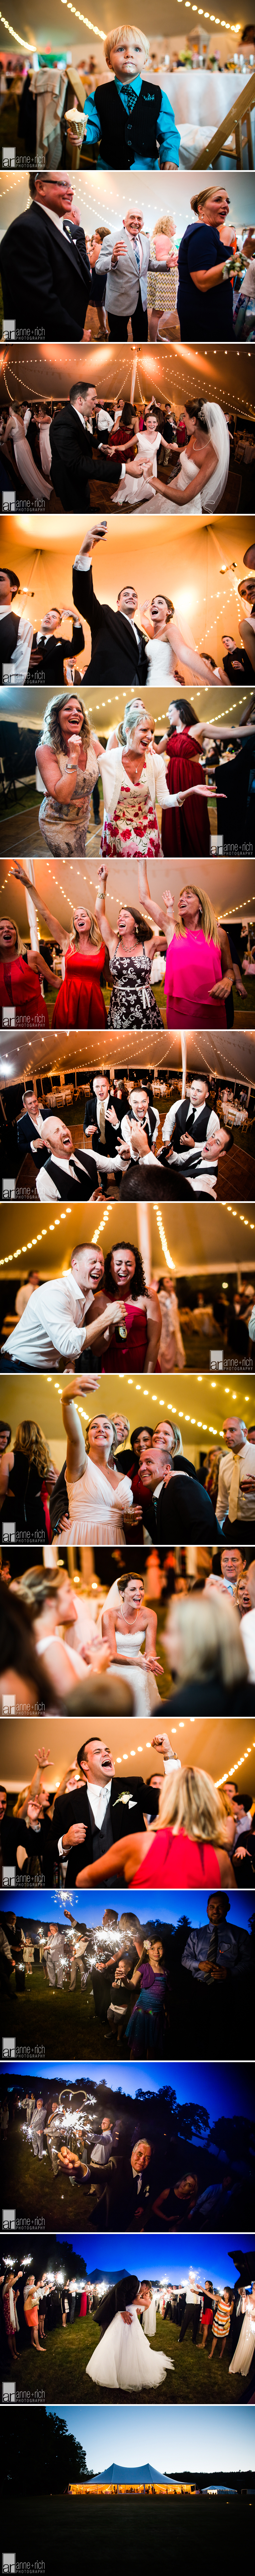 cooperstown_wedding4